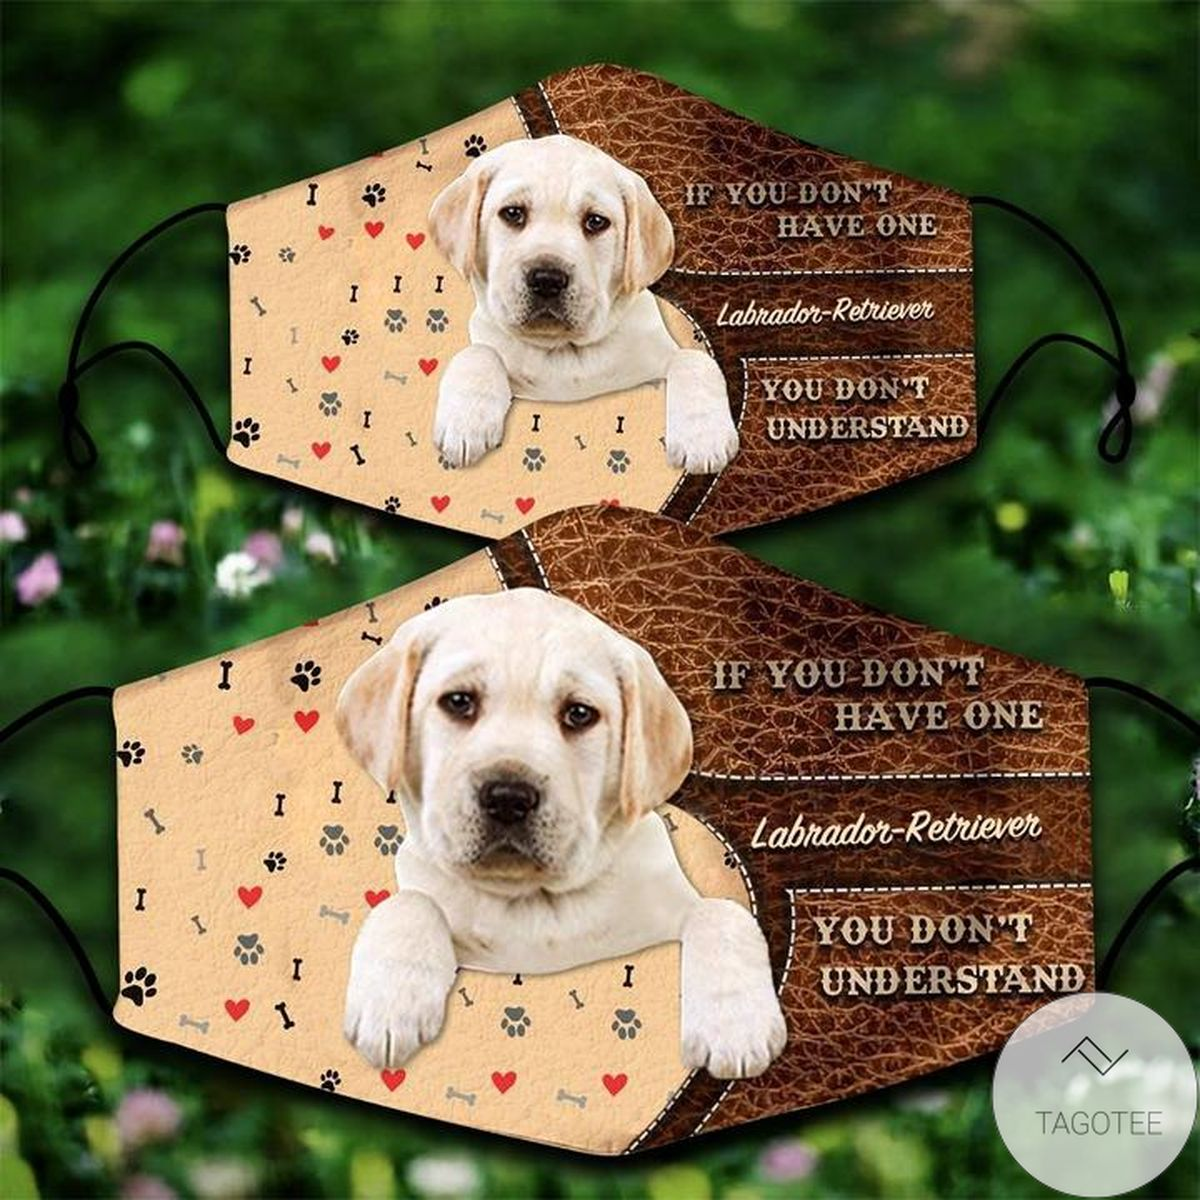 Labrador-Retriever If You Don't Have One You Don't Understand Face Mask